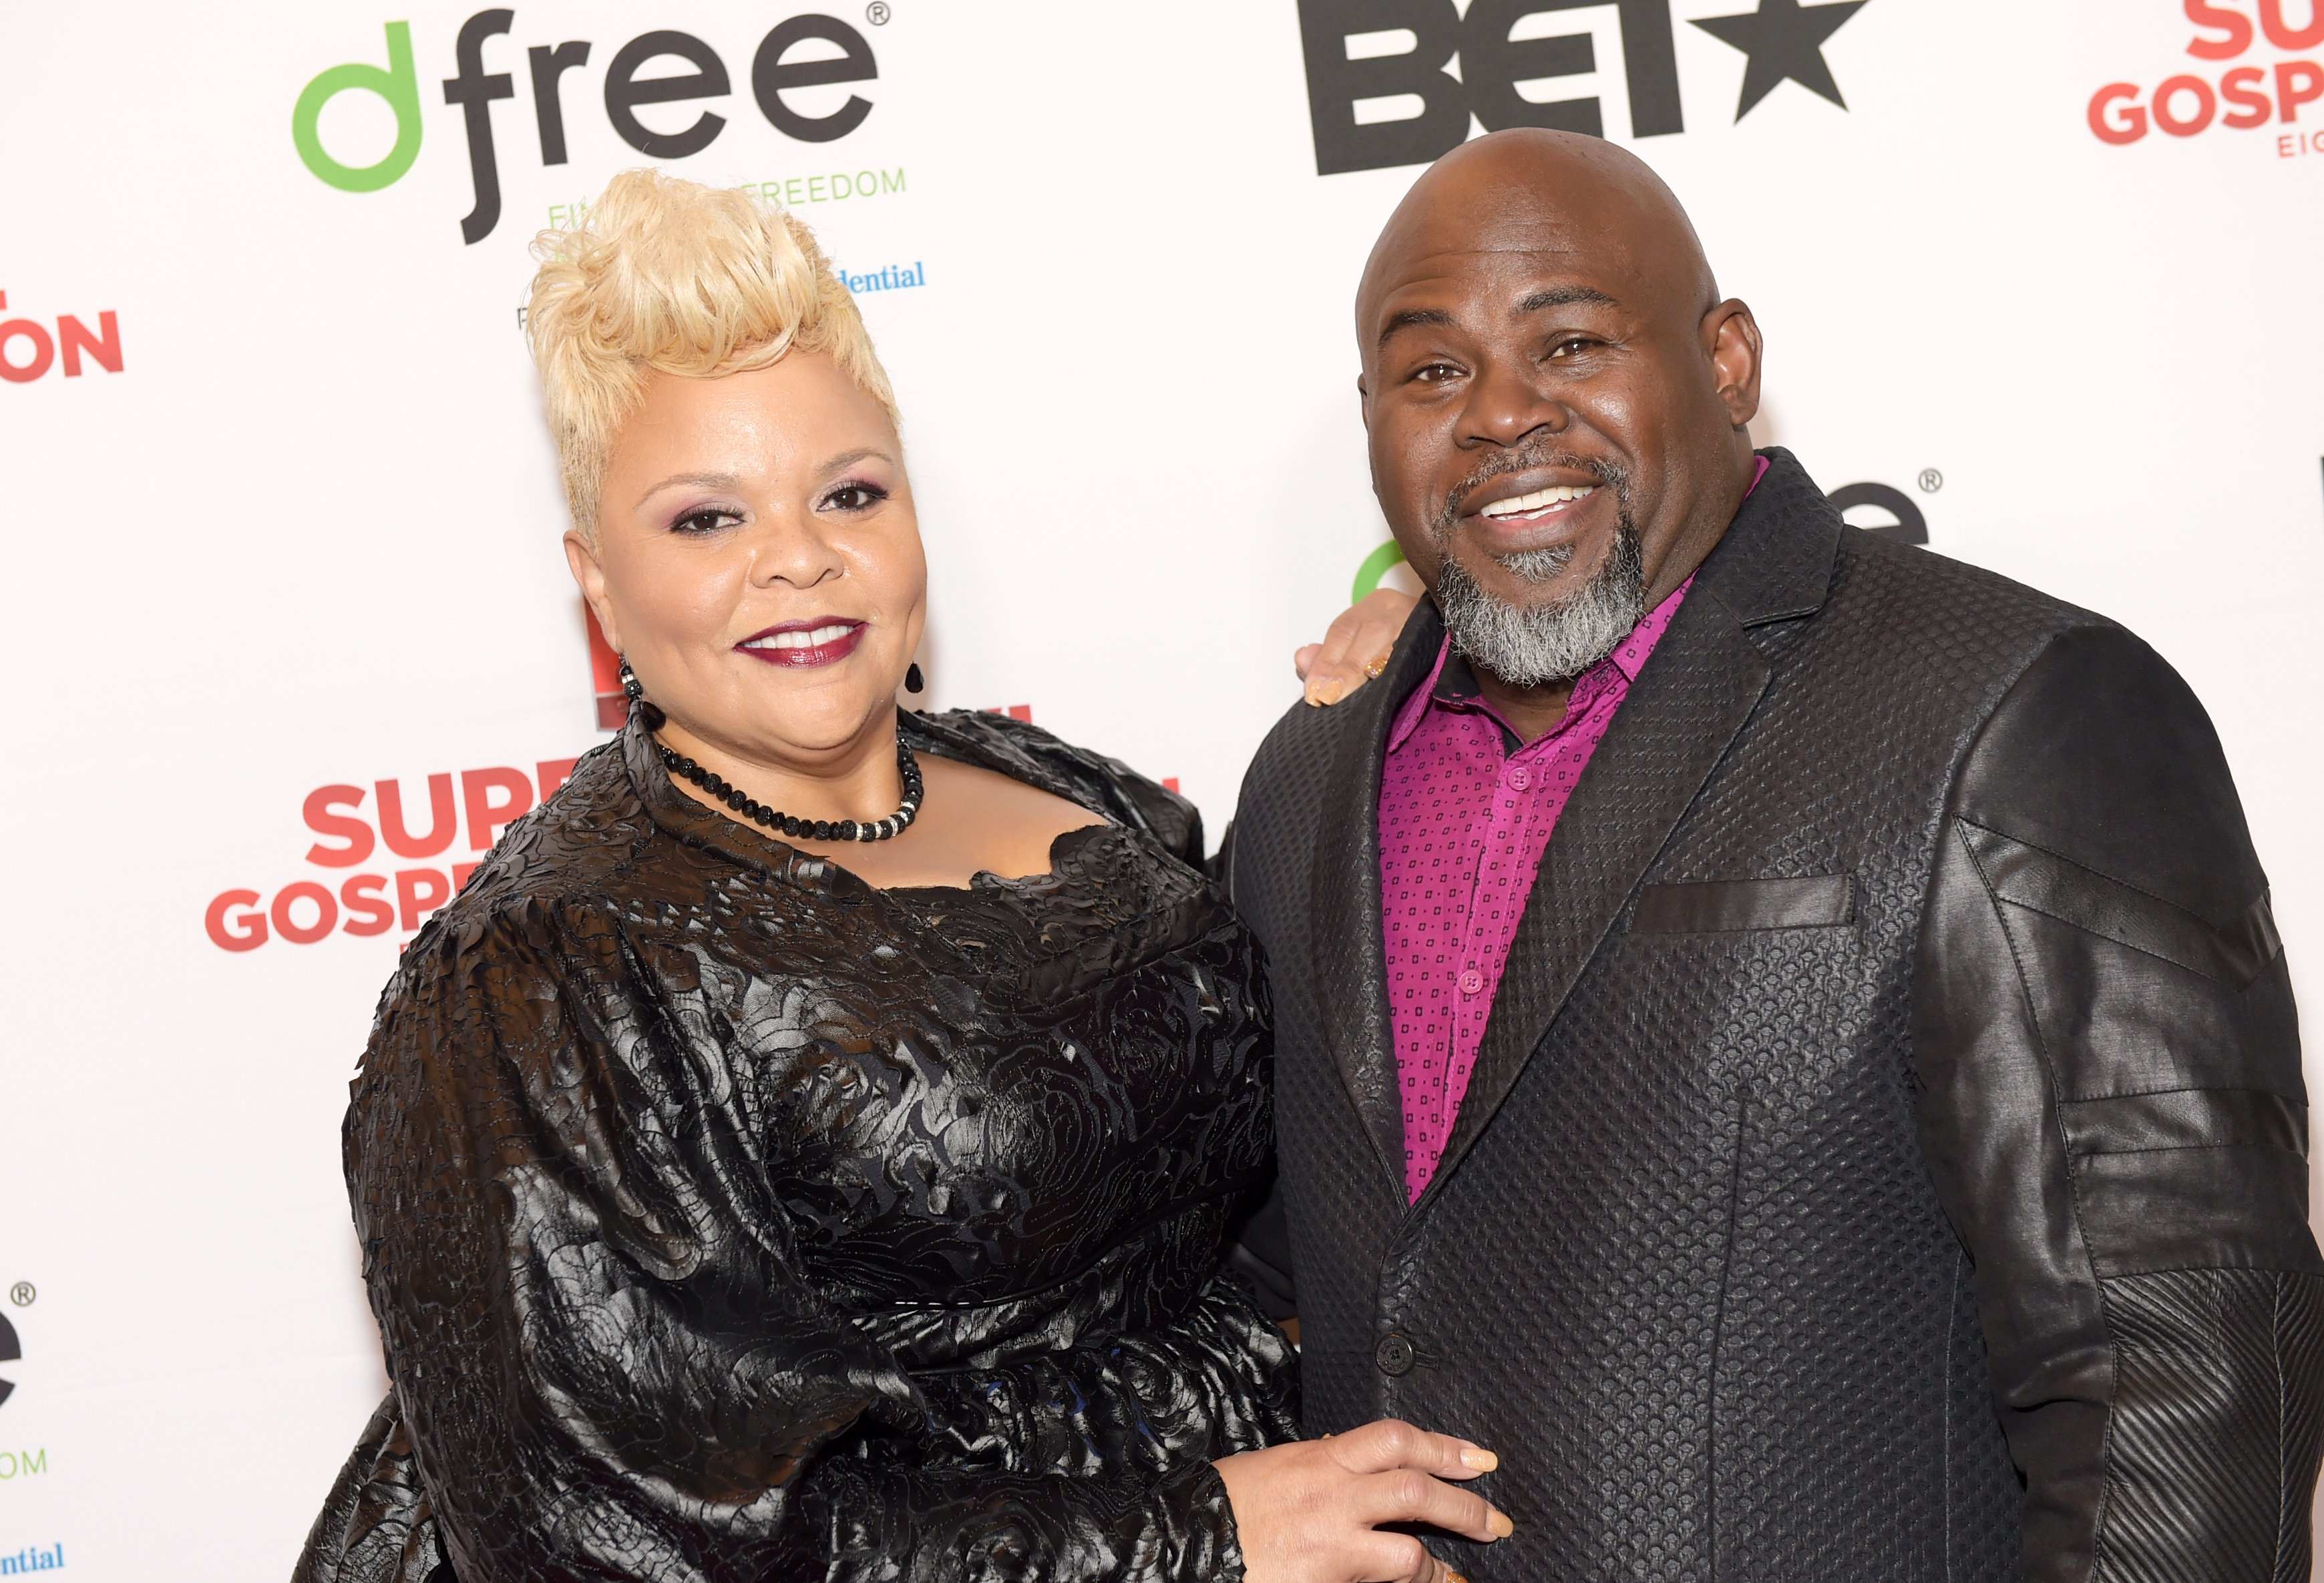 Tamela Mann and David Mann attend the BET Presents Super Bowl Gospel Celebration at Lakewood Church on February 3, 2017 in Houston, Texas. | Photo: Getty Images